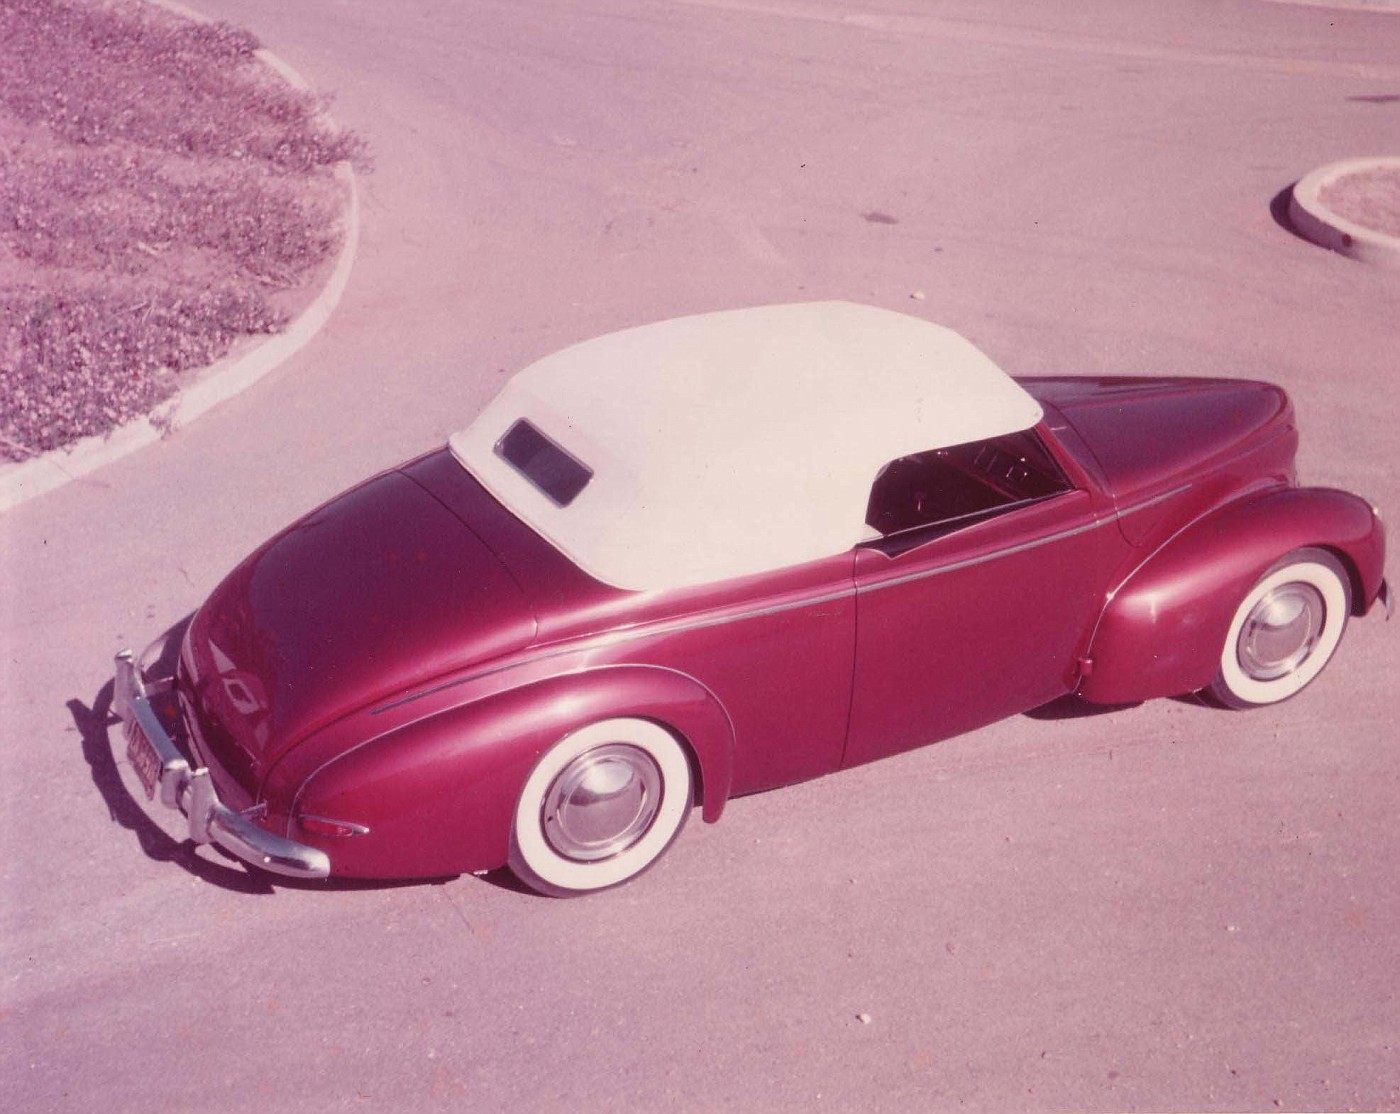 history custom car builder spotlight valley customs the h a m b the wonderfull background was a favourite of valley customs a lot of theire customs where photographed on this spot bumpers where 47 chevy units and